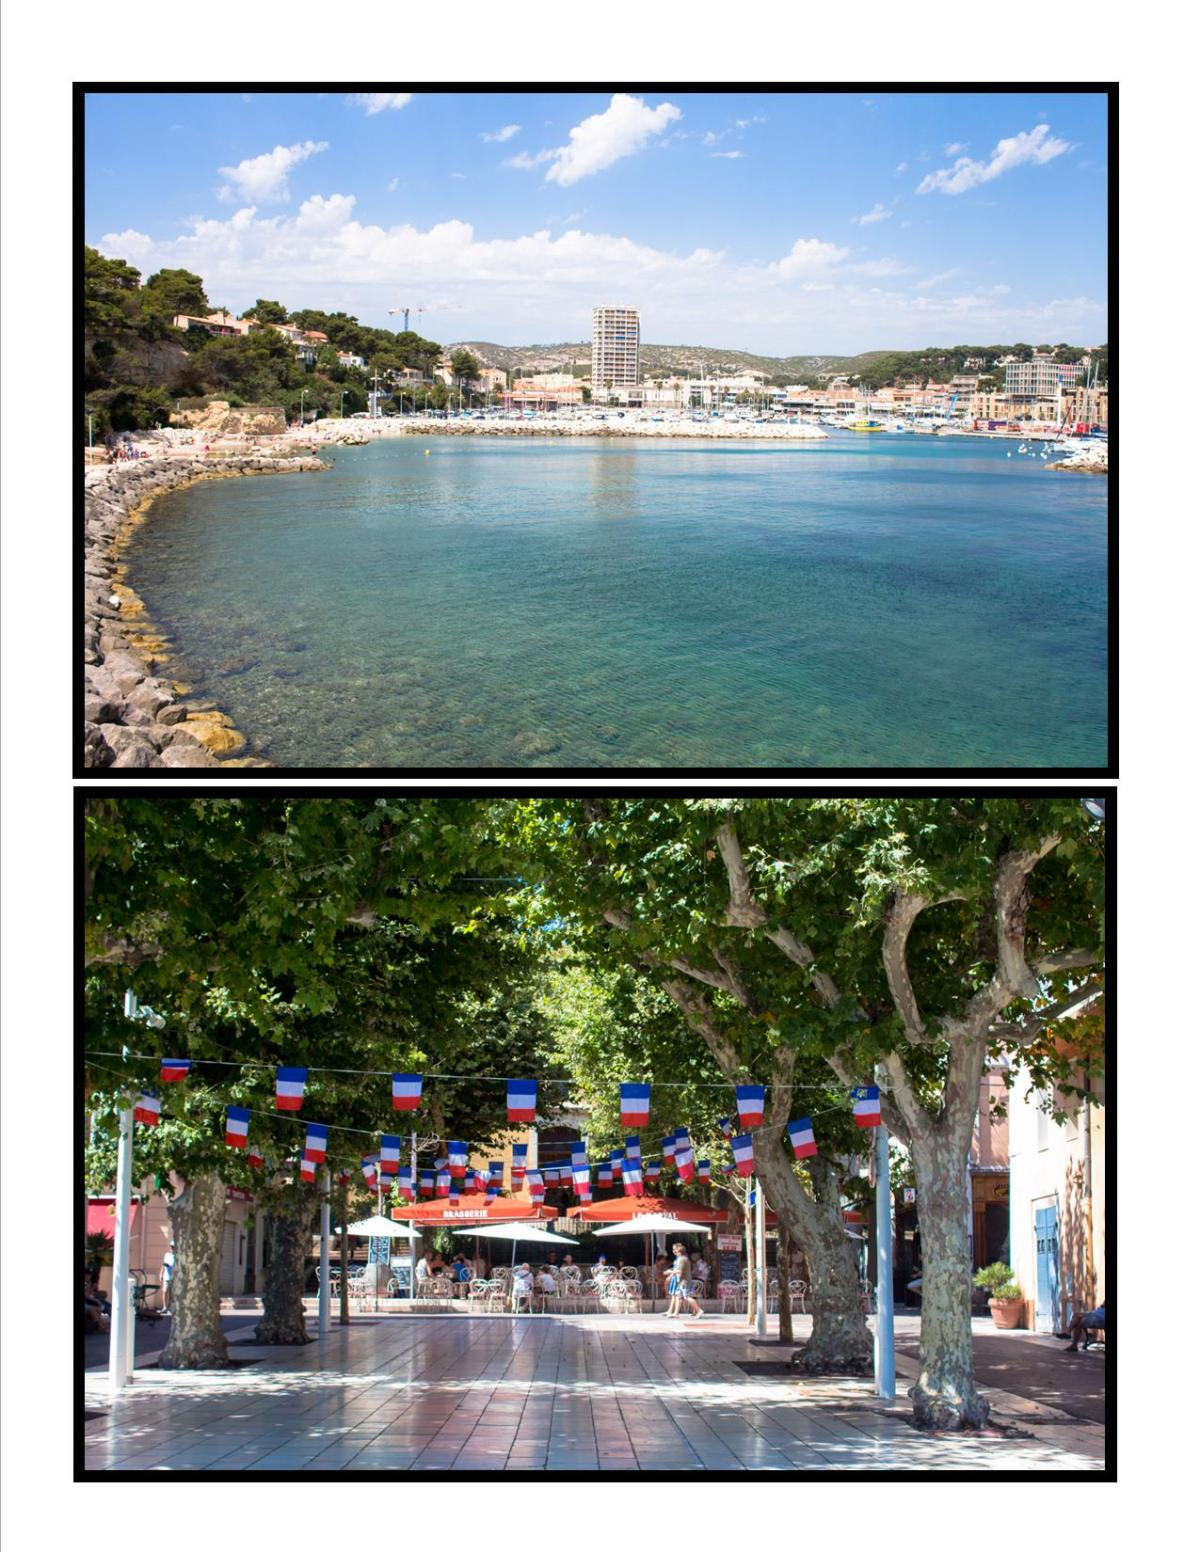 2 pictures, one of the Mediterranean see and one of the city center in France with French flags.